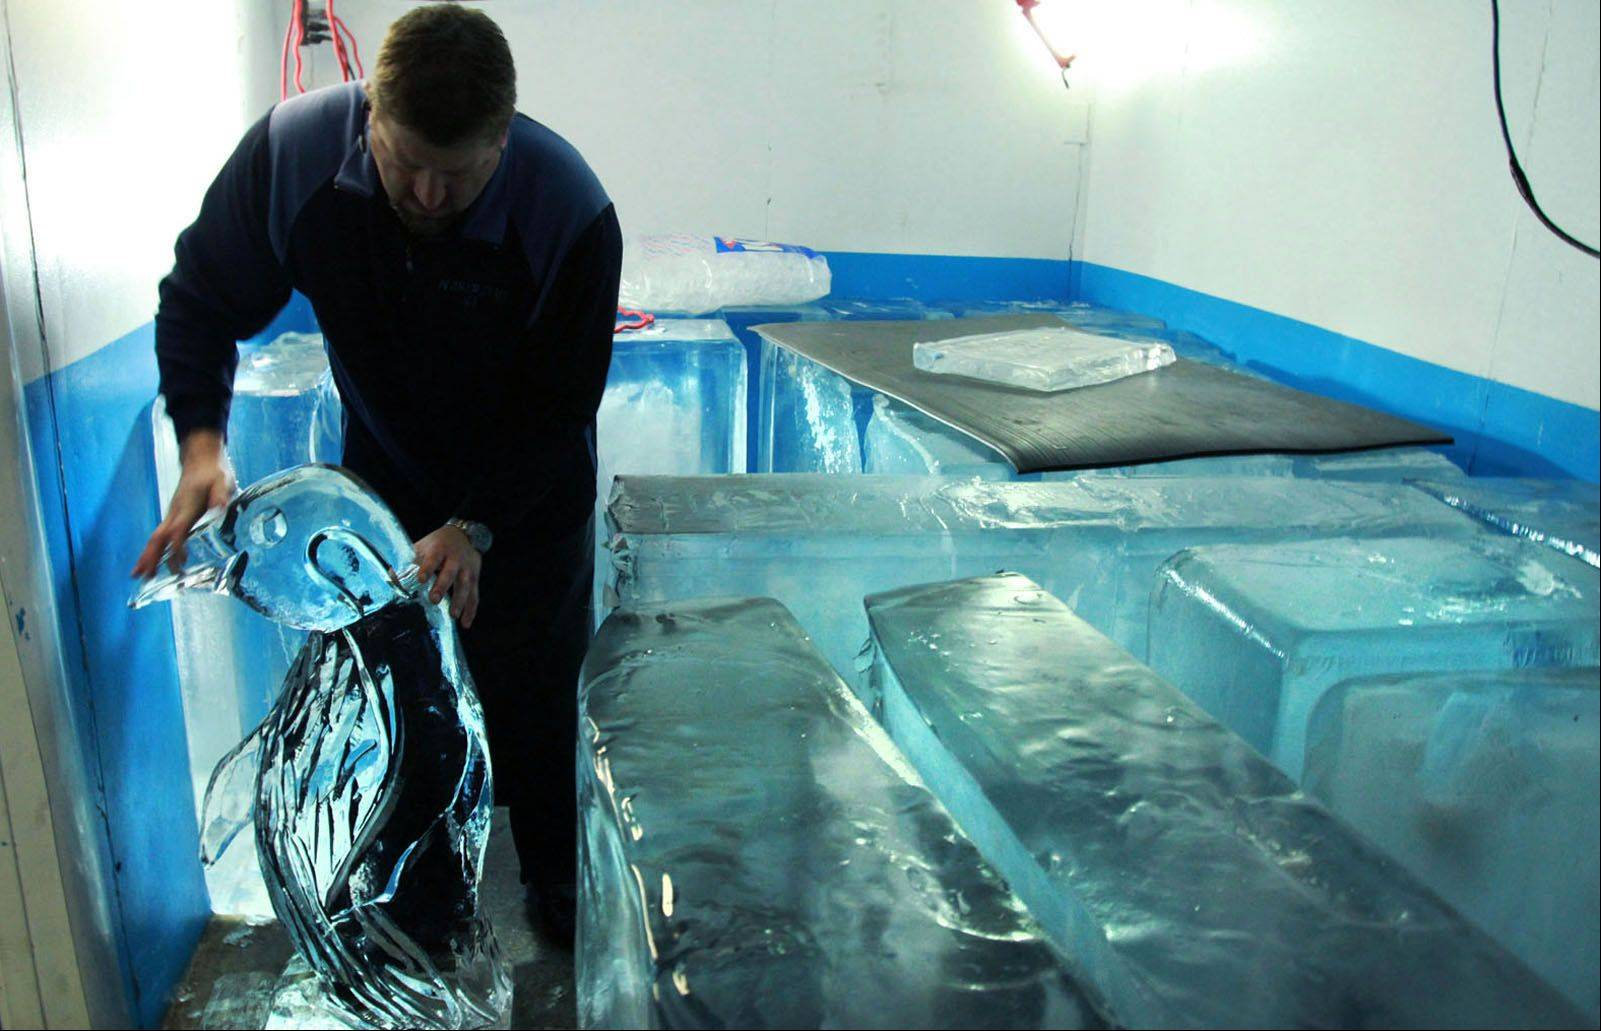 Dan Rebholz of Wheaton stores 300-pound blocks of ice he froze for carving and his finished pieces inside a walk-in freezer at his Villa Park studio.